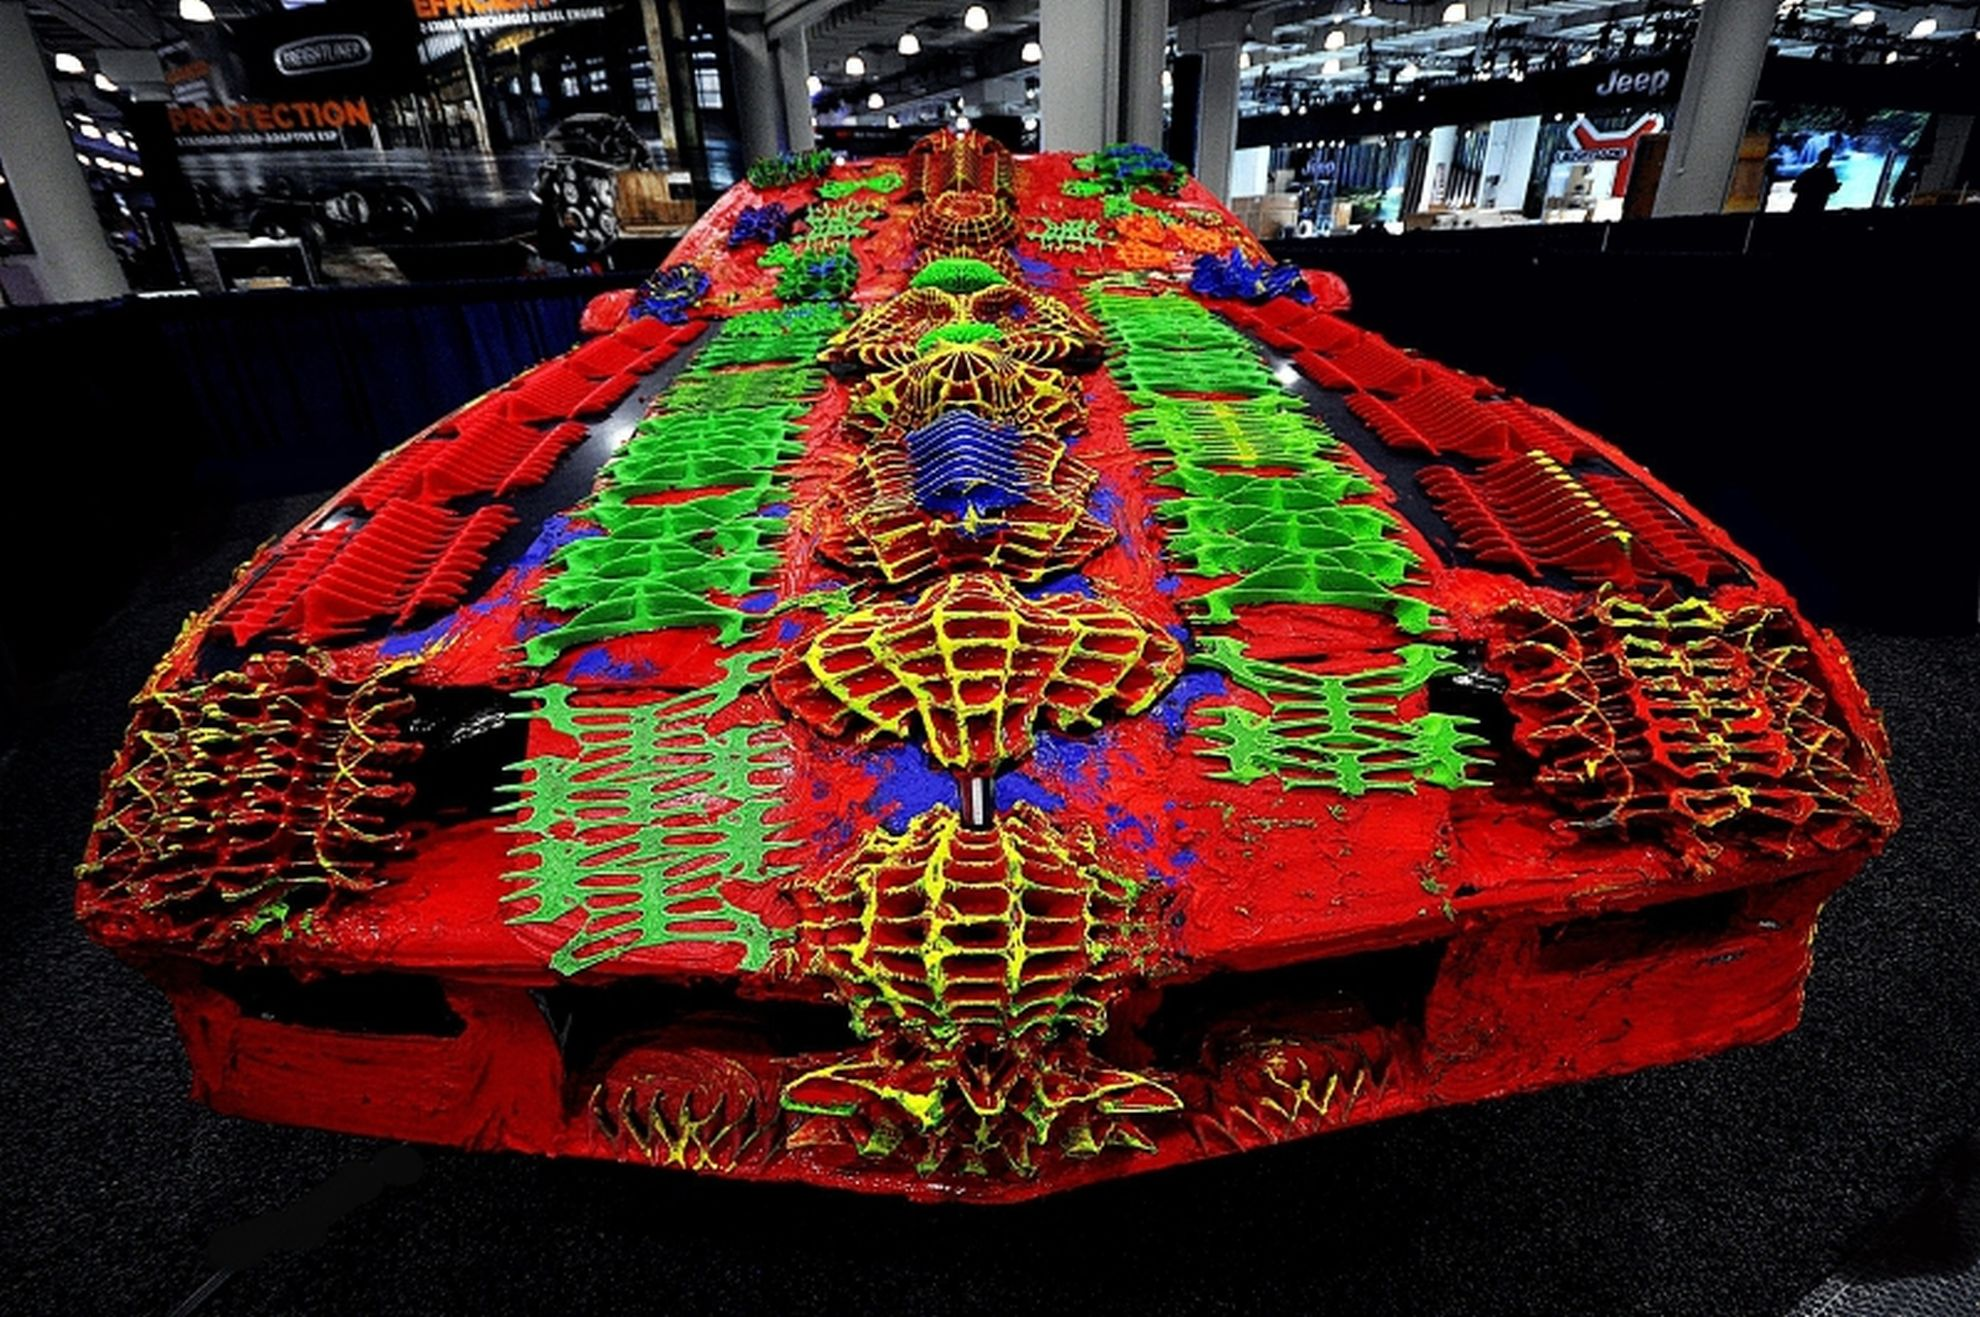 Artist-Ioan-Florea-Presents-3D-Printed-Camaro-Art-Car-at-New-York-International-Auto-Show